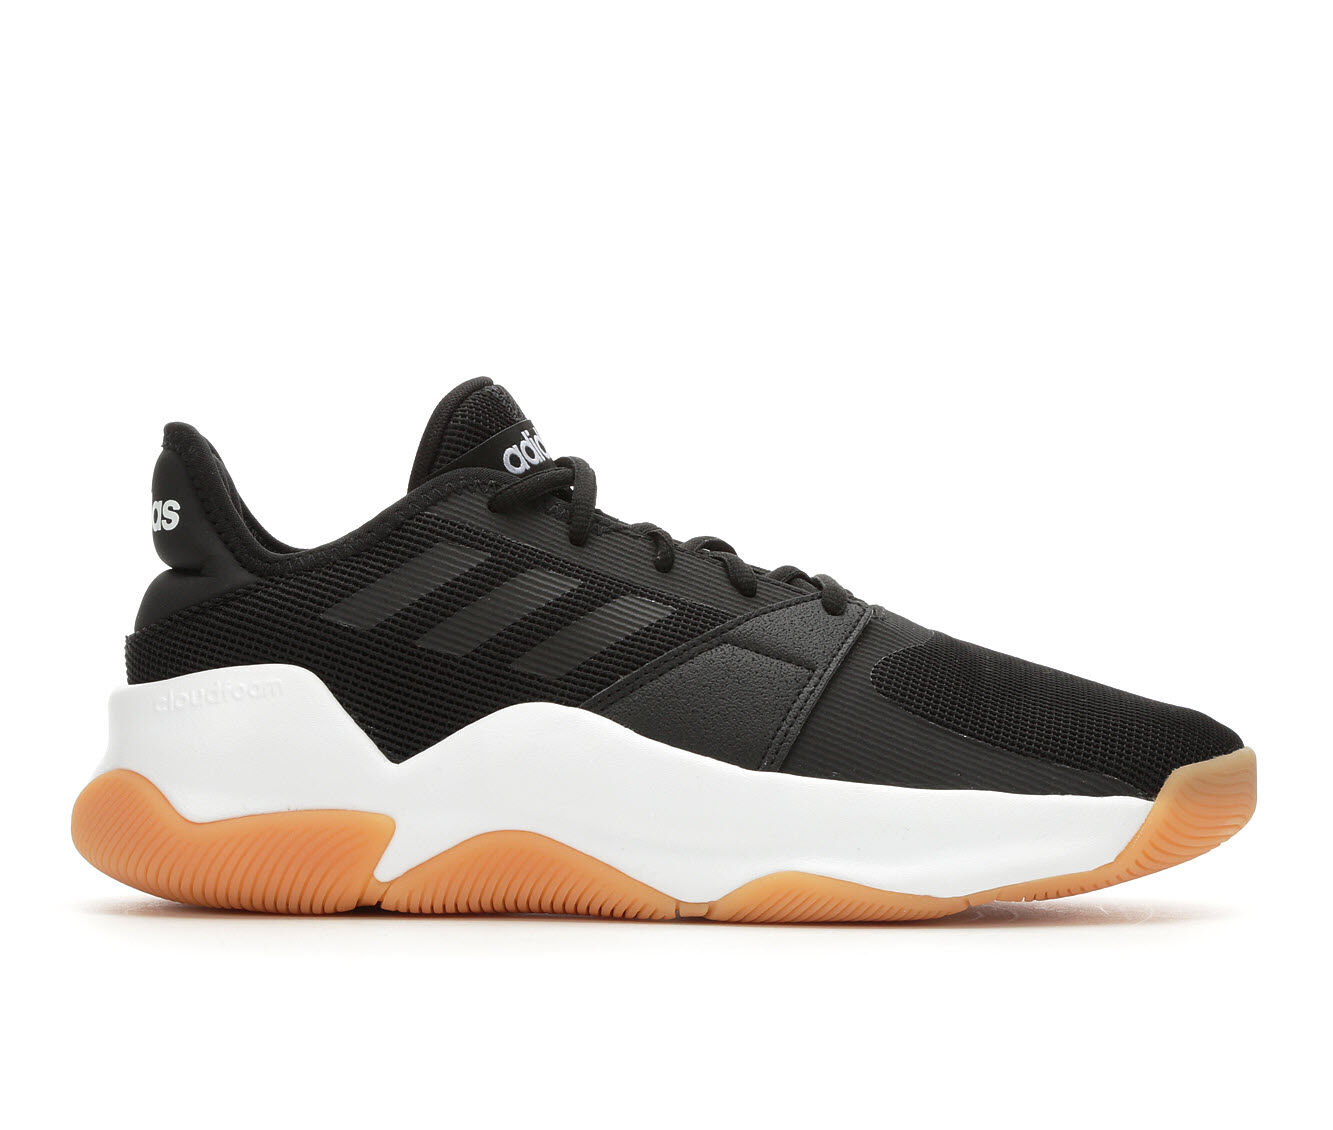 Men's Adidas Streetflow Basketball Shoes Blk/Wht/Gum